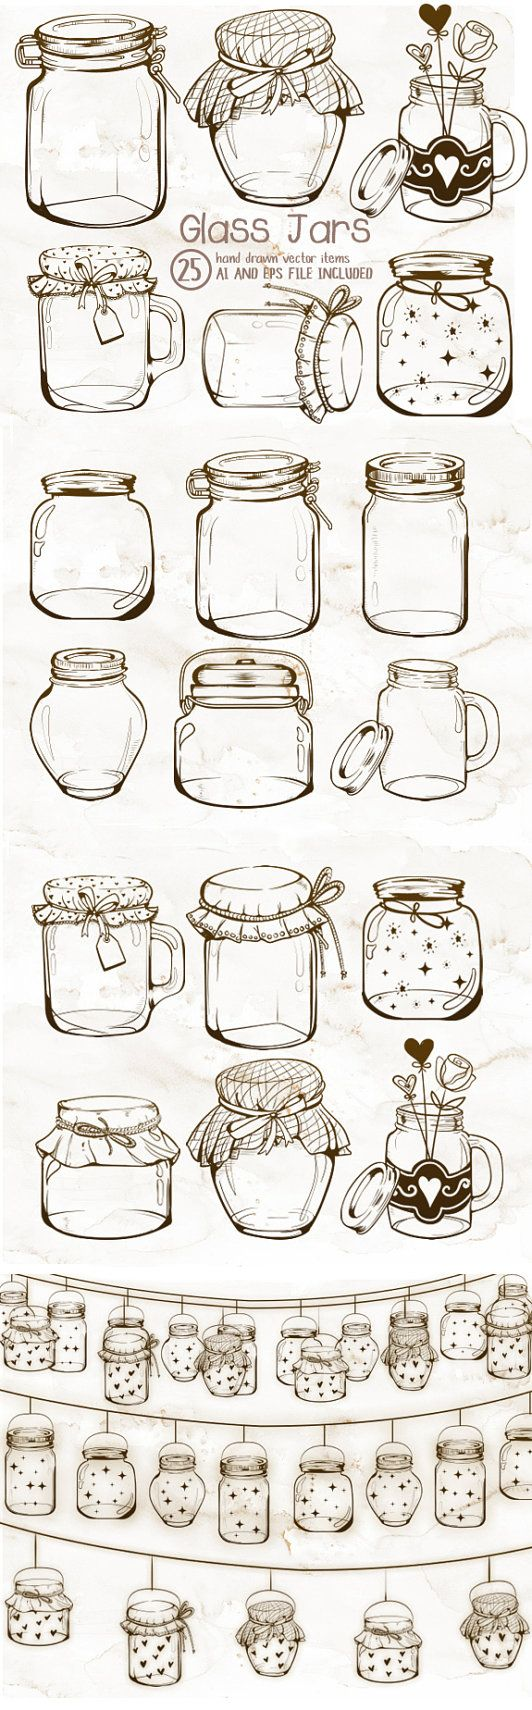 This Is A Listing For Set Of Mason Or Glass Jars Clipart Every Graphic Included In Was Hand Drawn And Sketch Adobe Photoshop